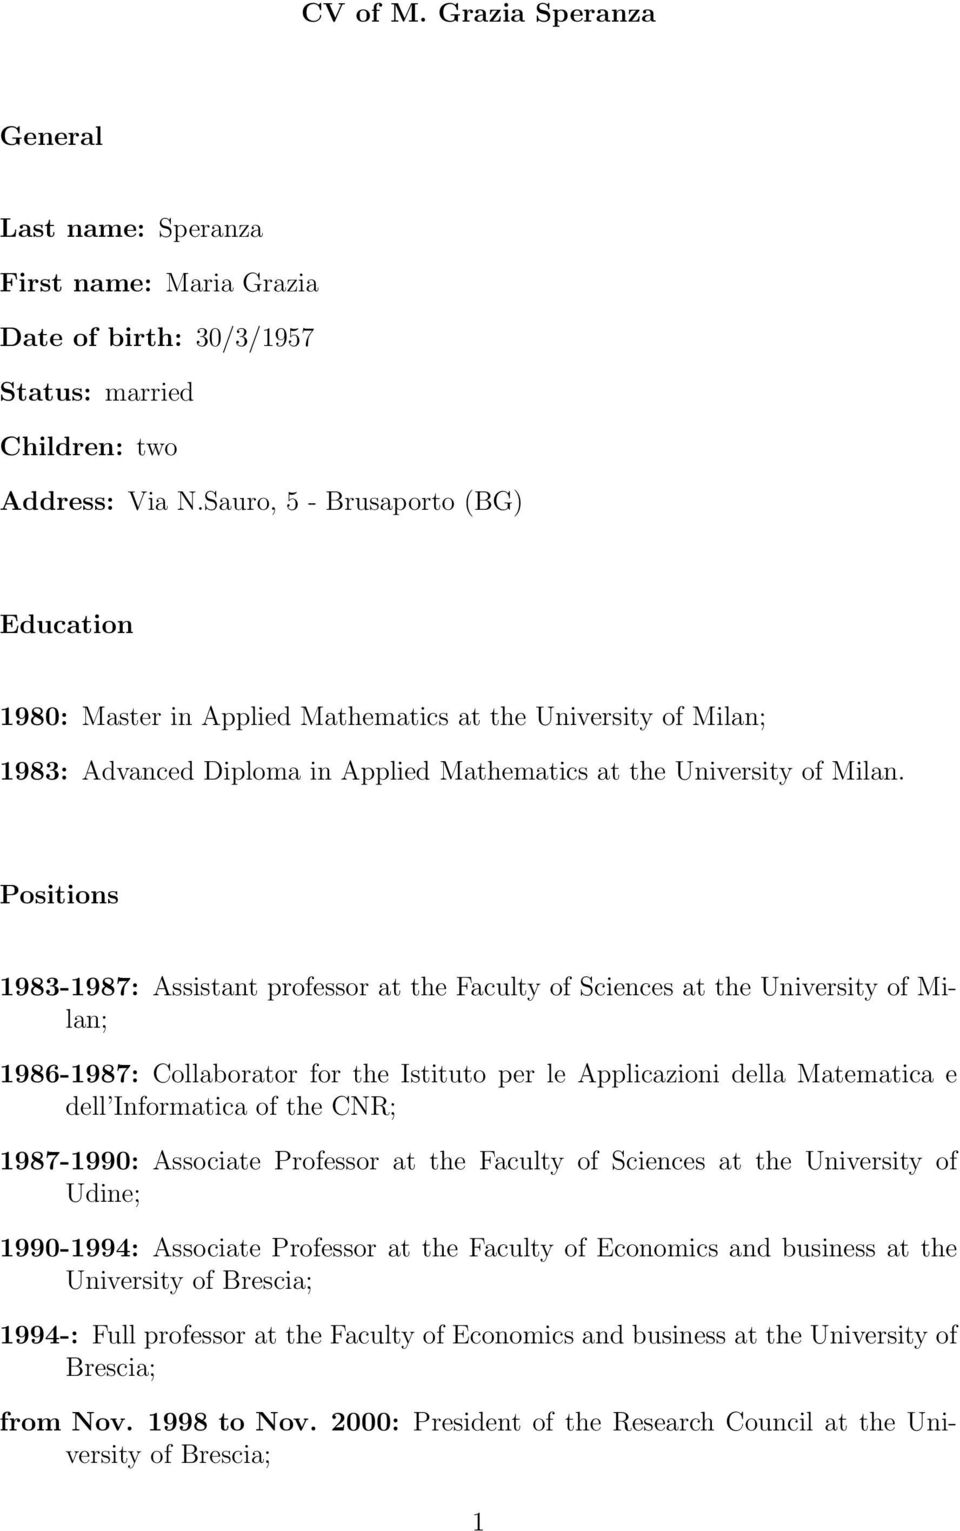 Positions 1983-1987: Assistant professor at the Faculty of Sciences at the University of Milan; 1986-1987: Collaborator for the Istituto per le Applicazioni della Matematica e dell Informatica of the